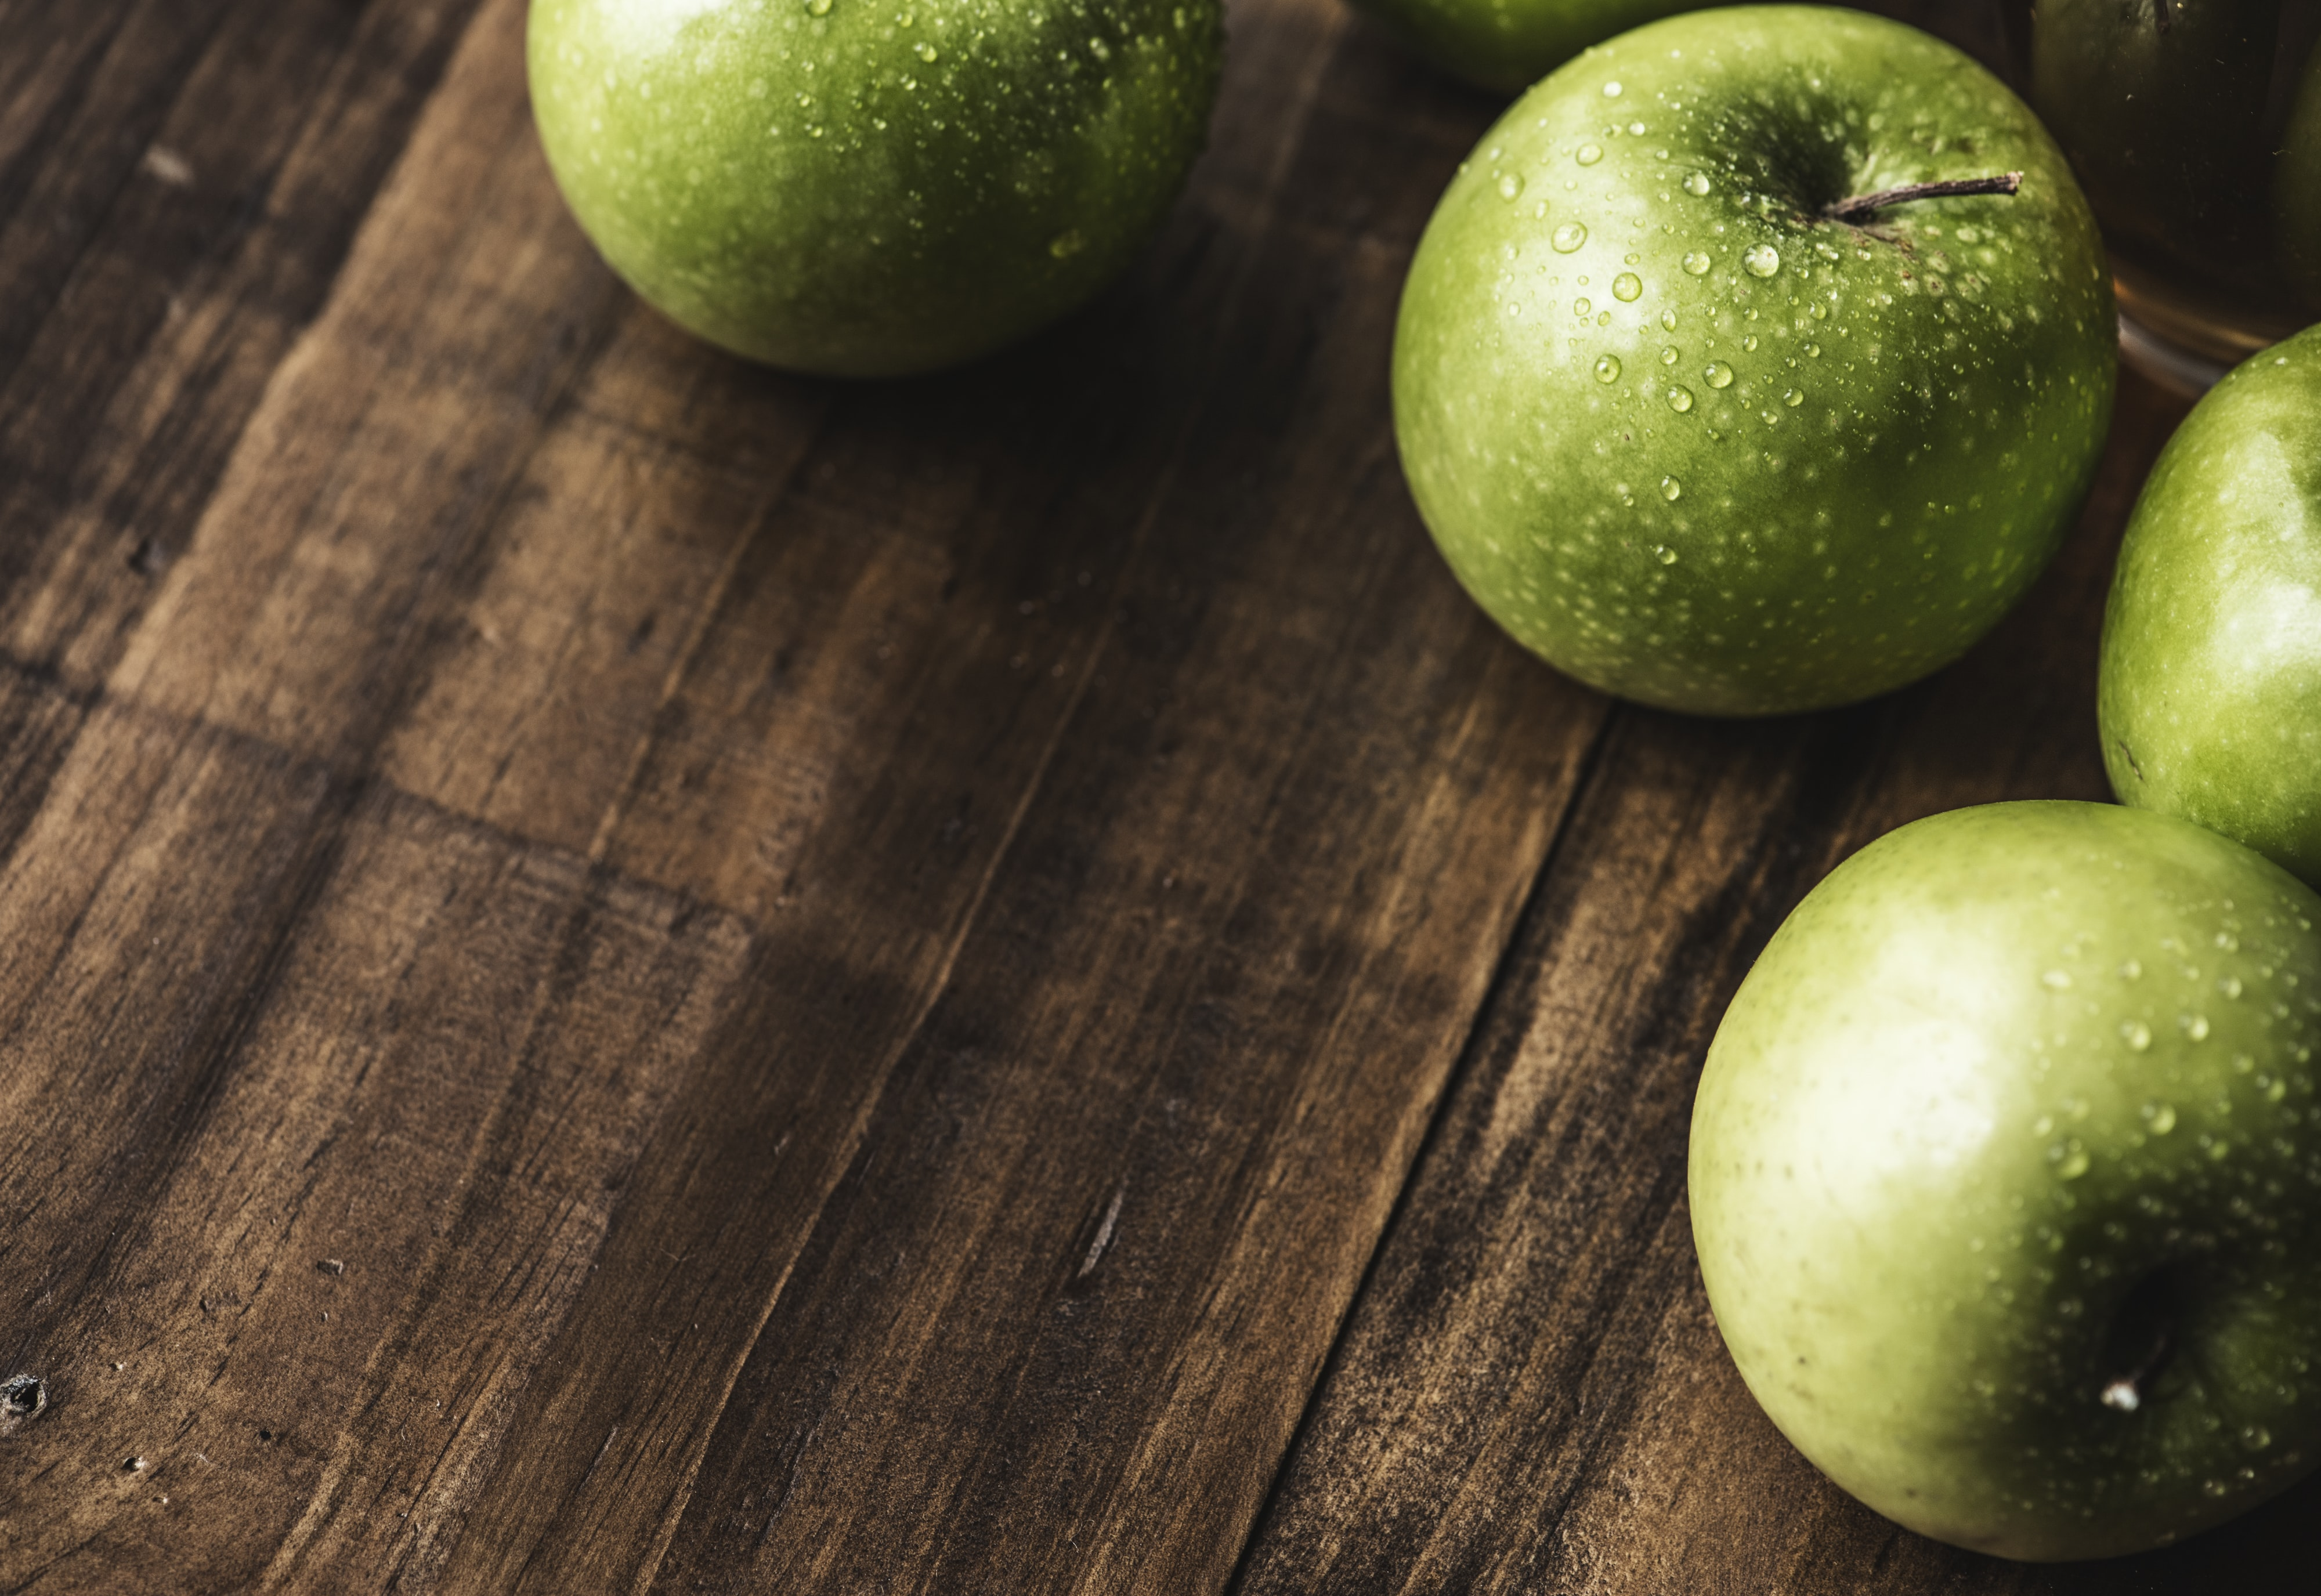 four green apples on wooden surface